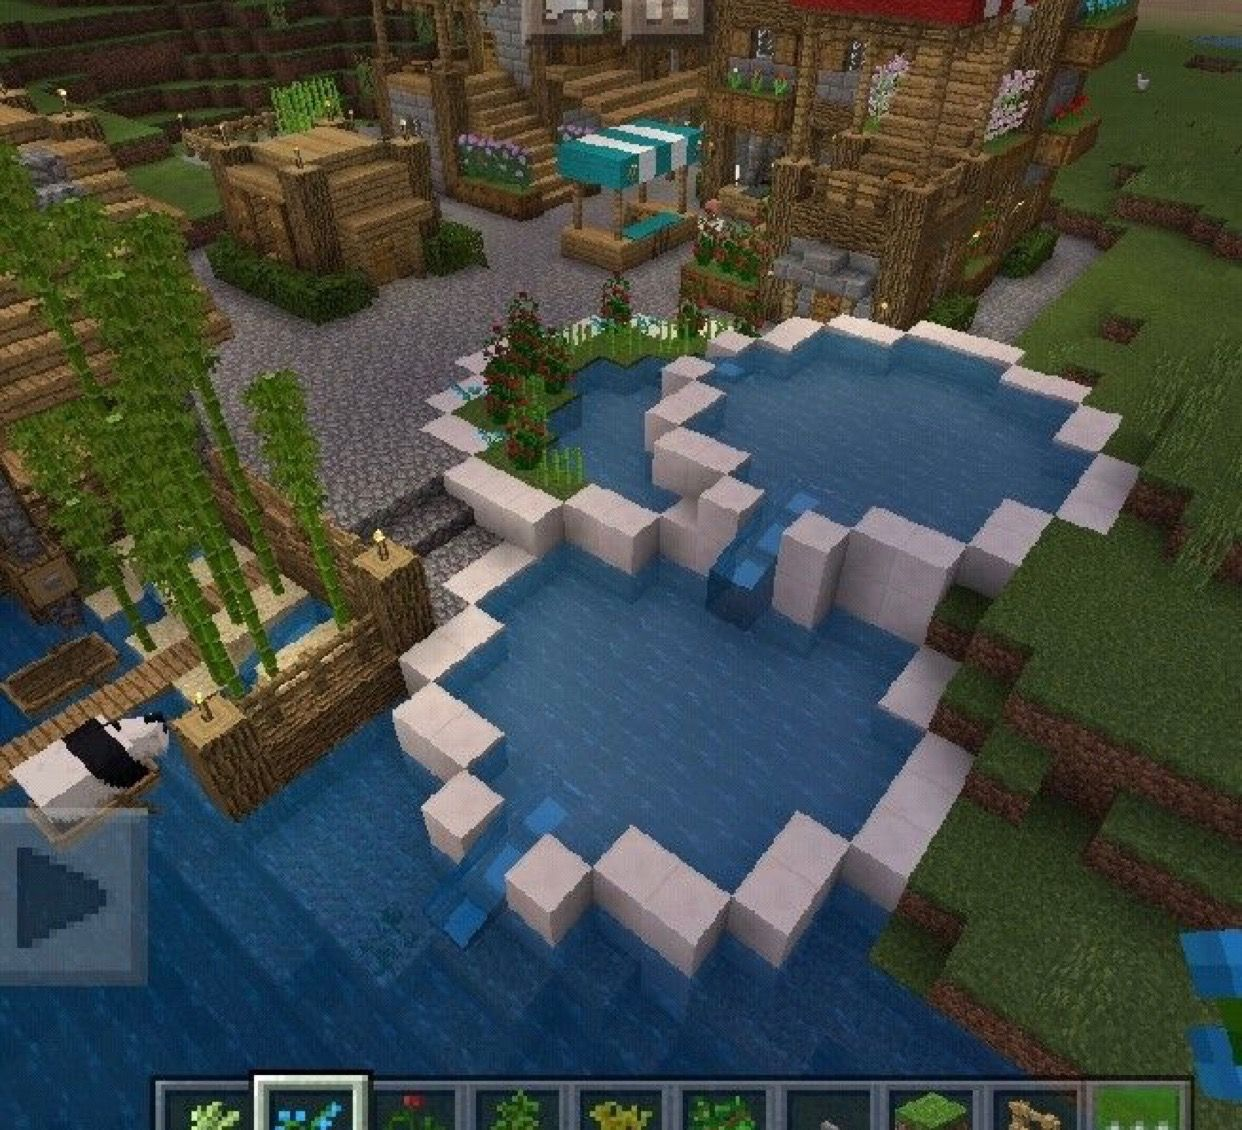 The House In The Background With Images Minecraft Houses